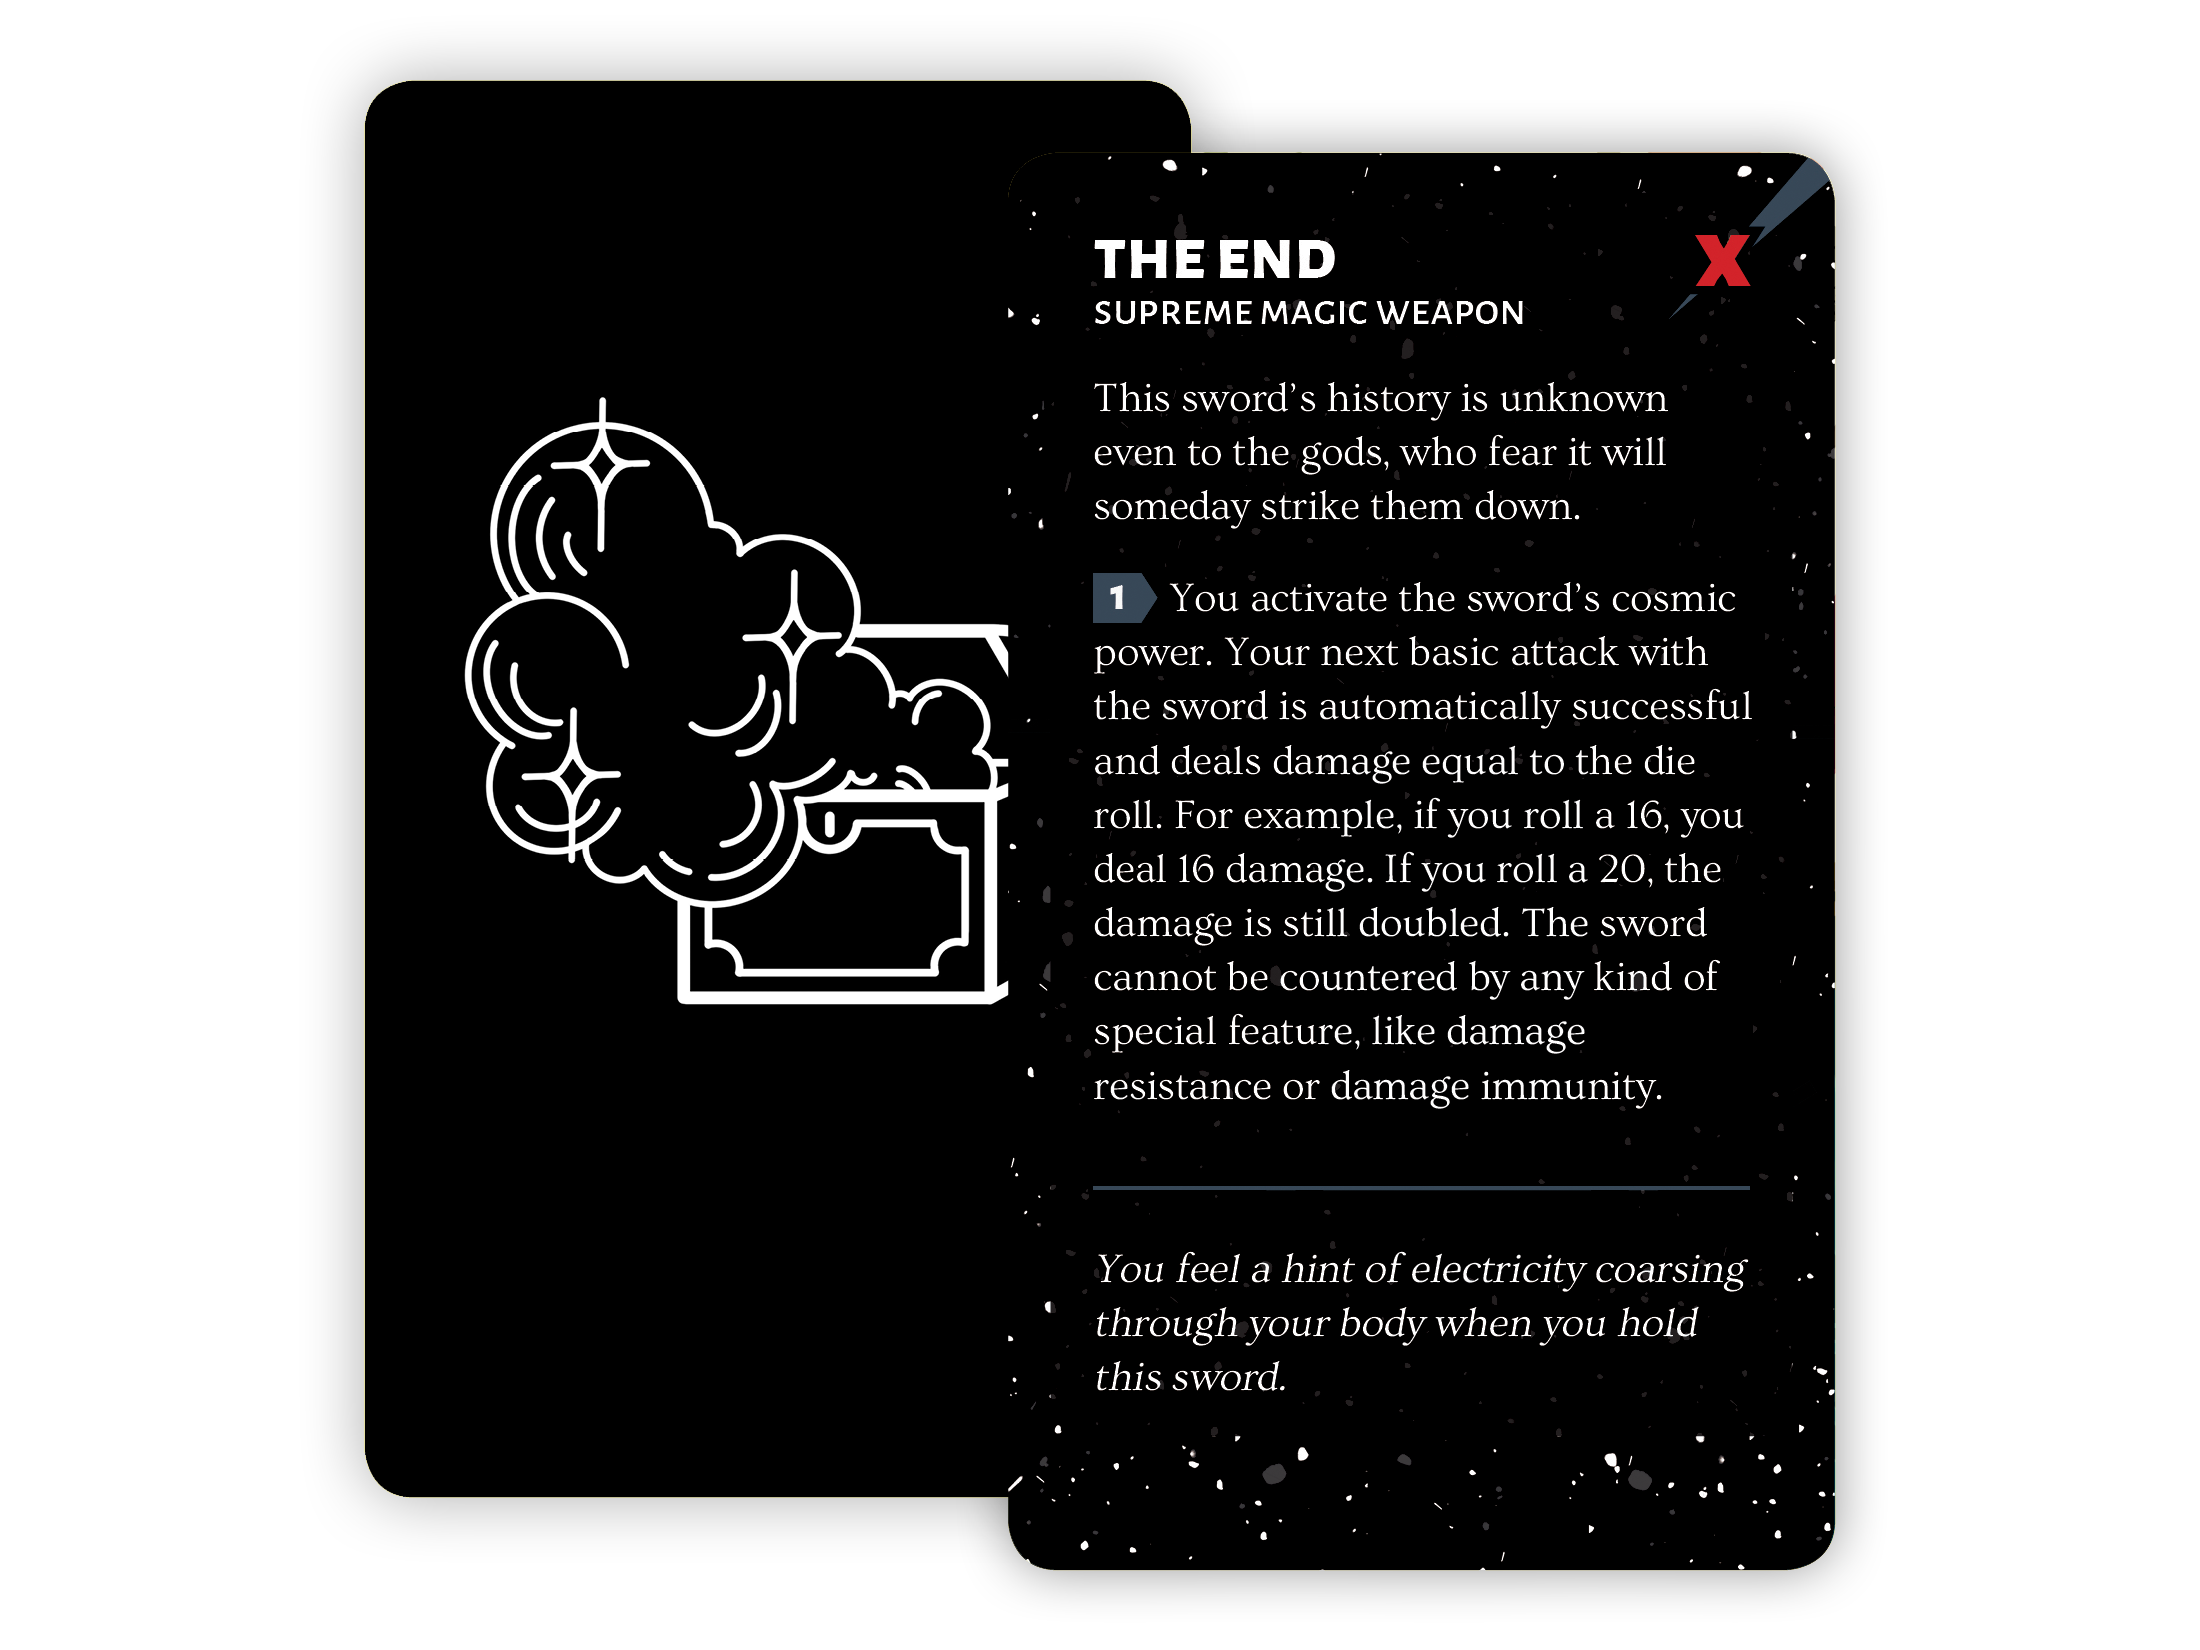 A card for The End: a supreme magic weapon that's capable of cutting down gods.